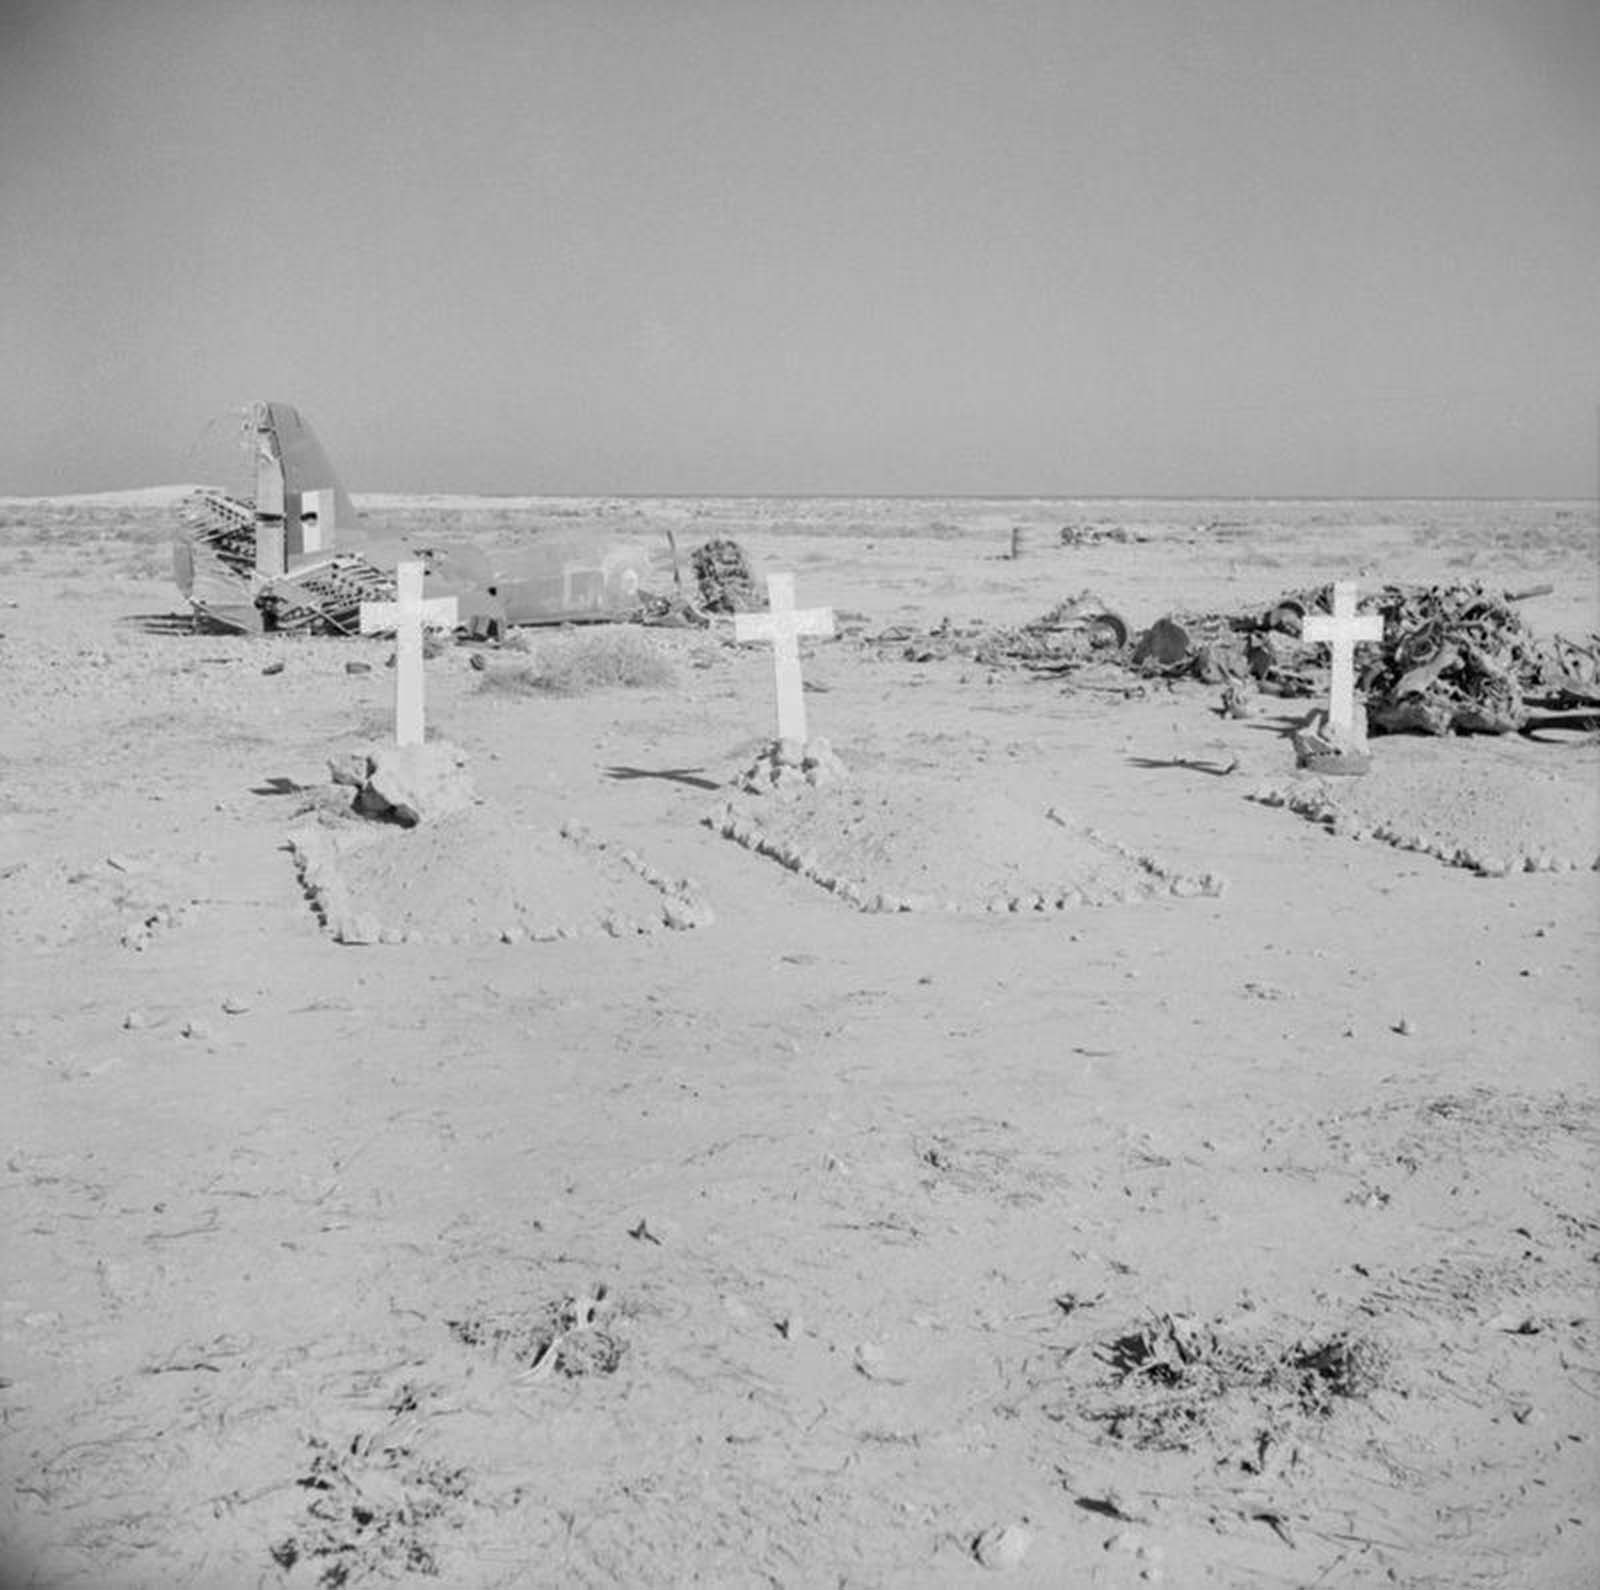 The graves of three aircrew of No. 39 Squadron RAF, buried by the Germans, lie in front of the wreckage of their Martin Maryland Mark II south-west of Gazala.